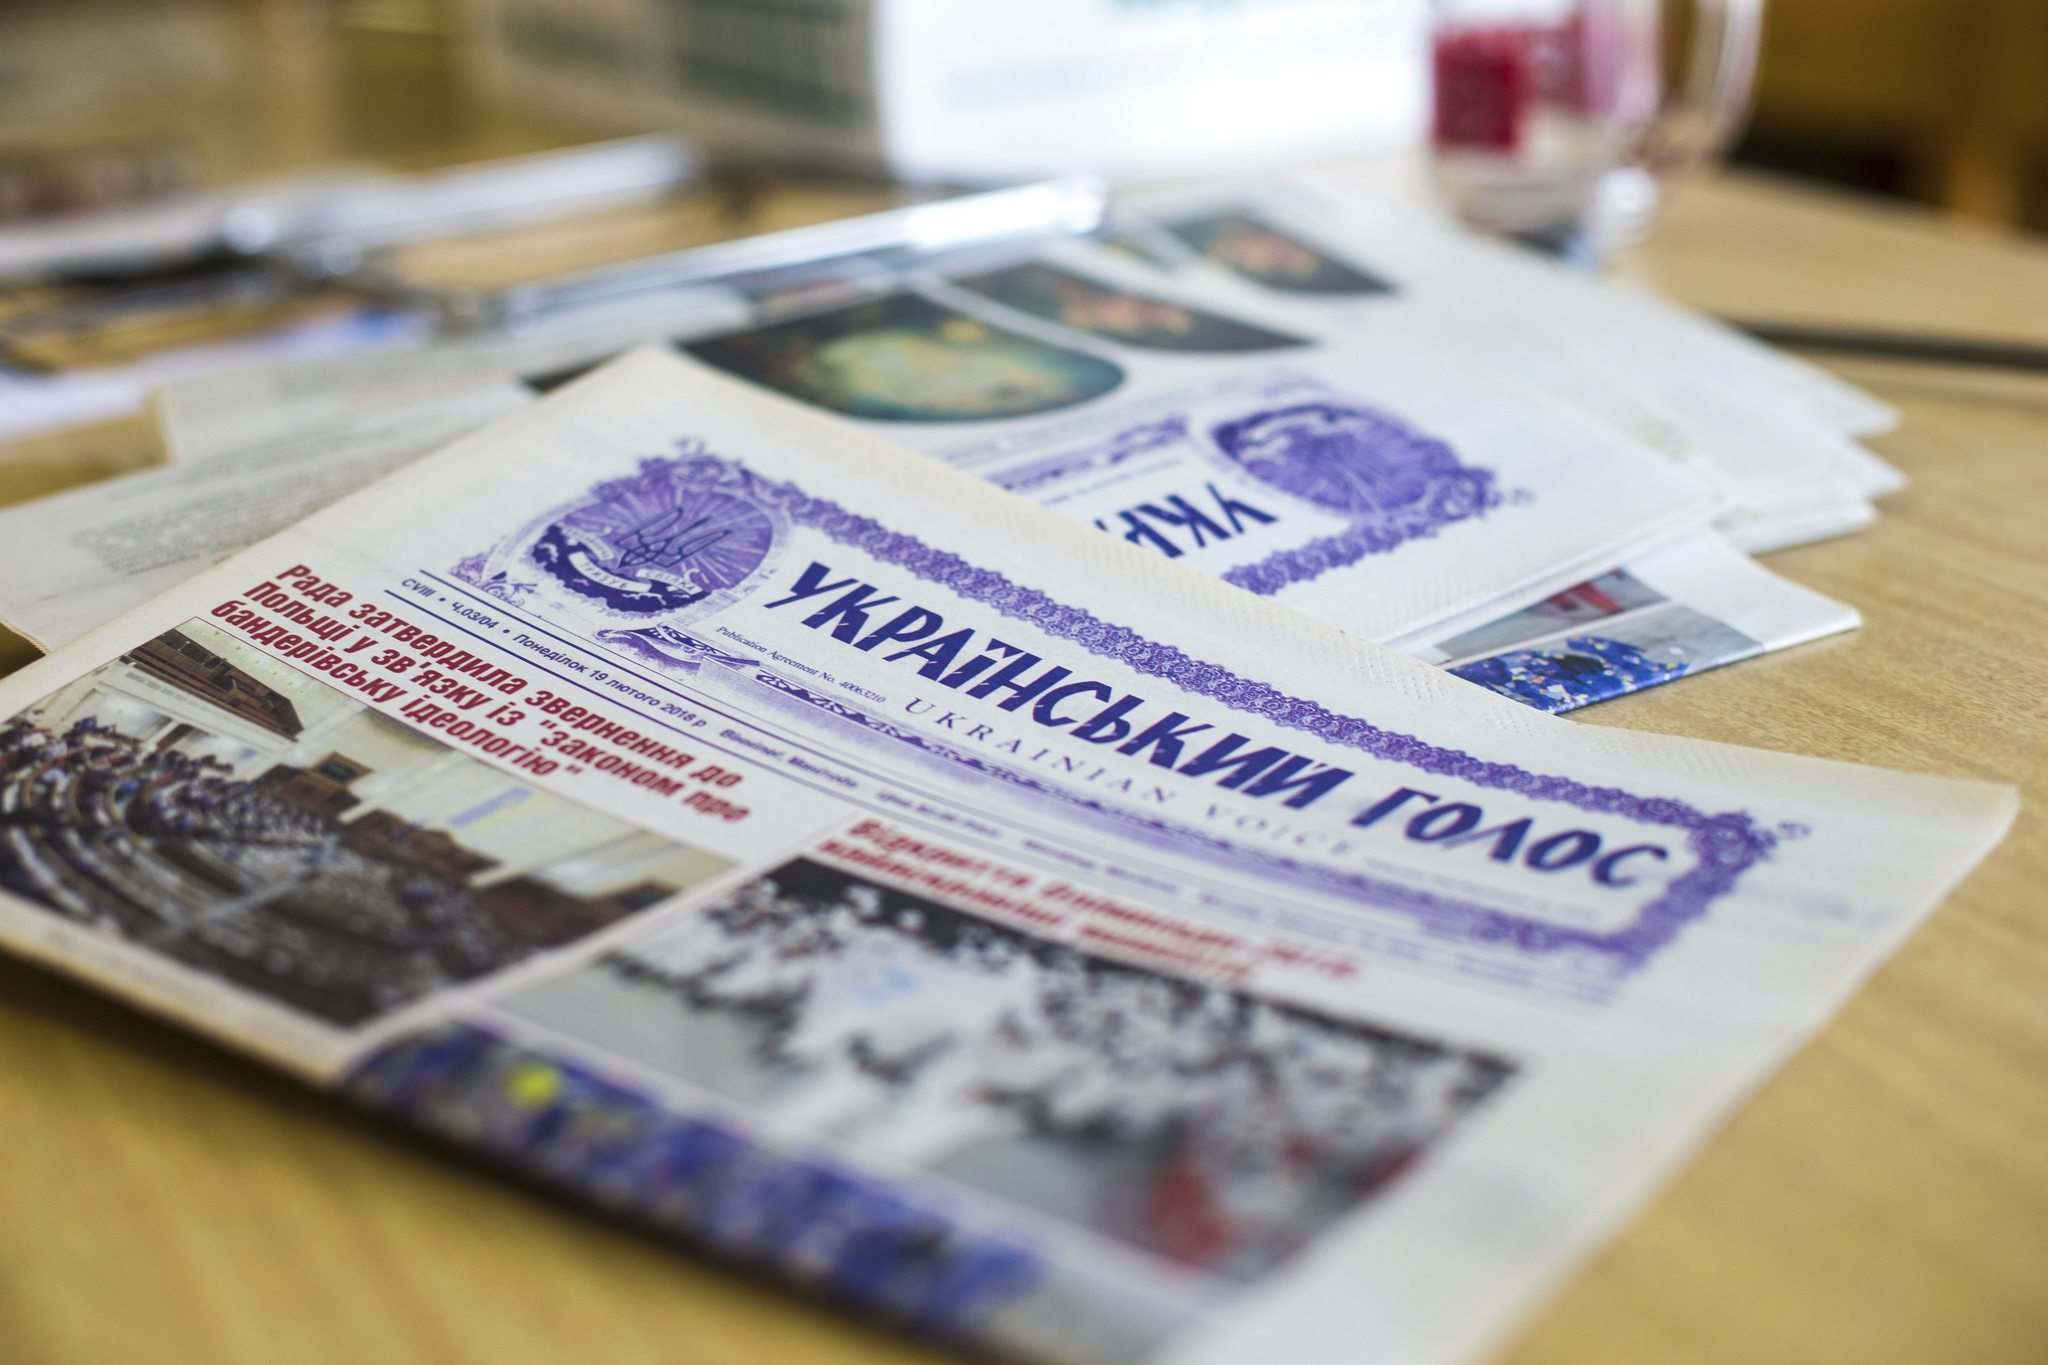 The Ukrainian Voice has been publishing in Winnipeg for more than a century. It will print its last edition at the end of August. (Mikaela MacKenzie / Winnipeg Free Press)